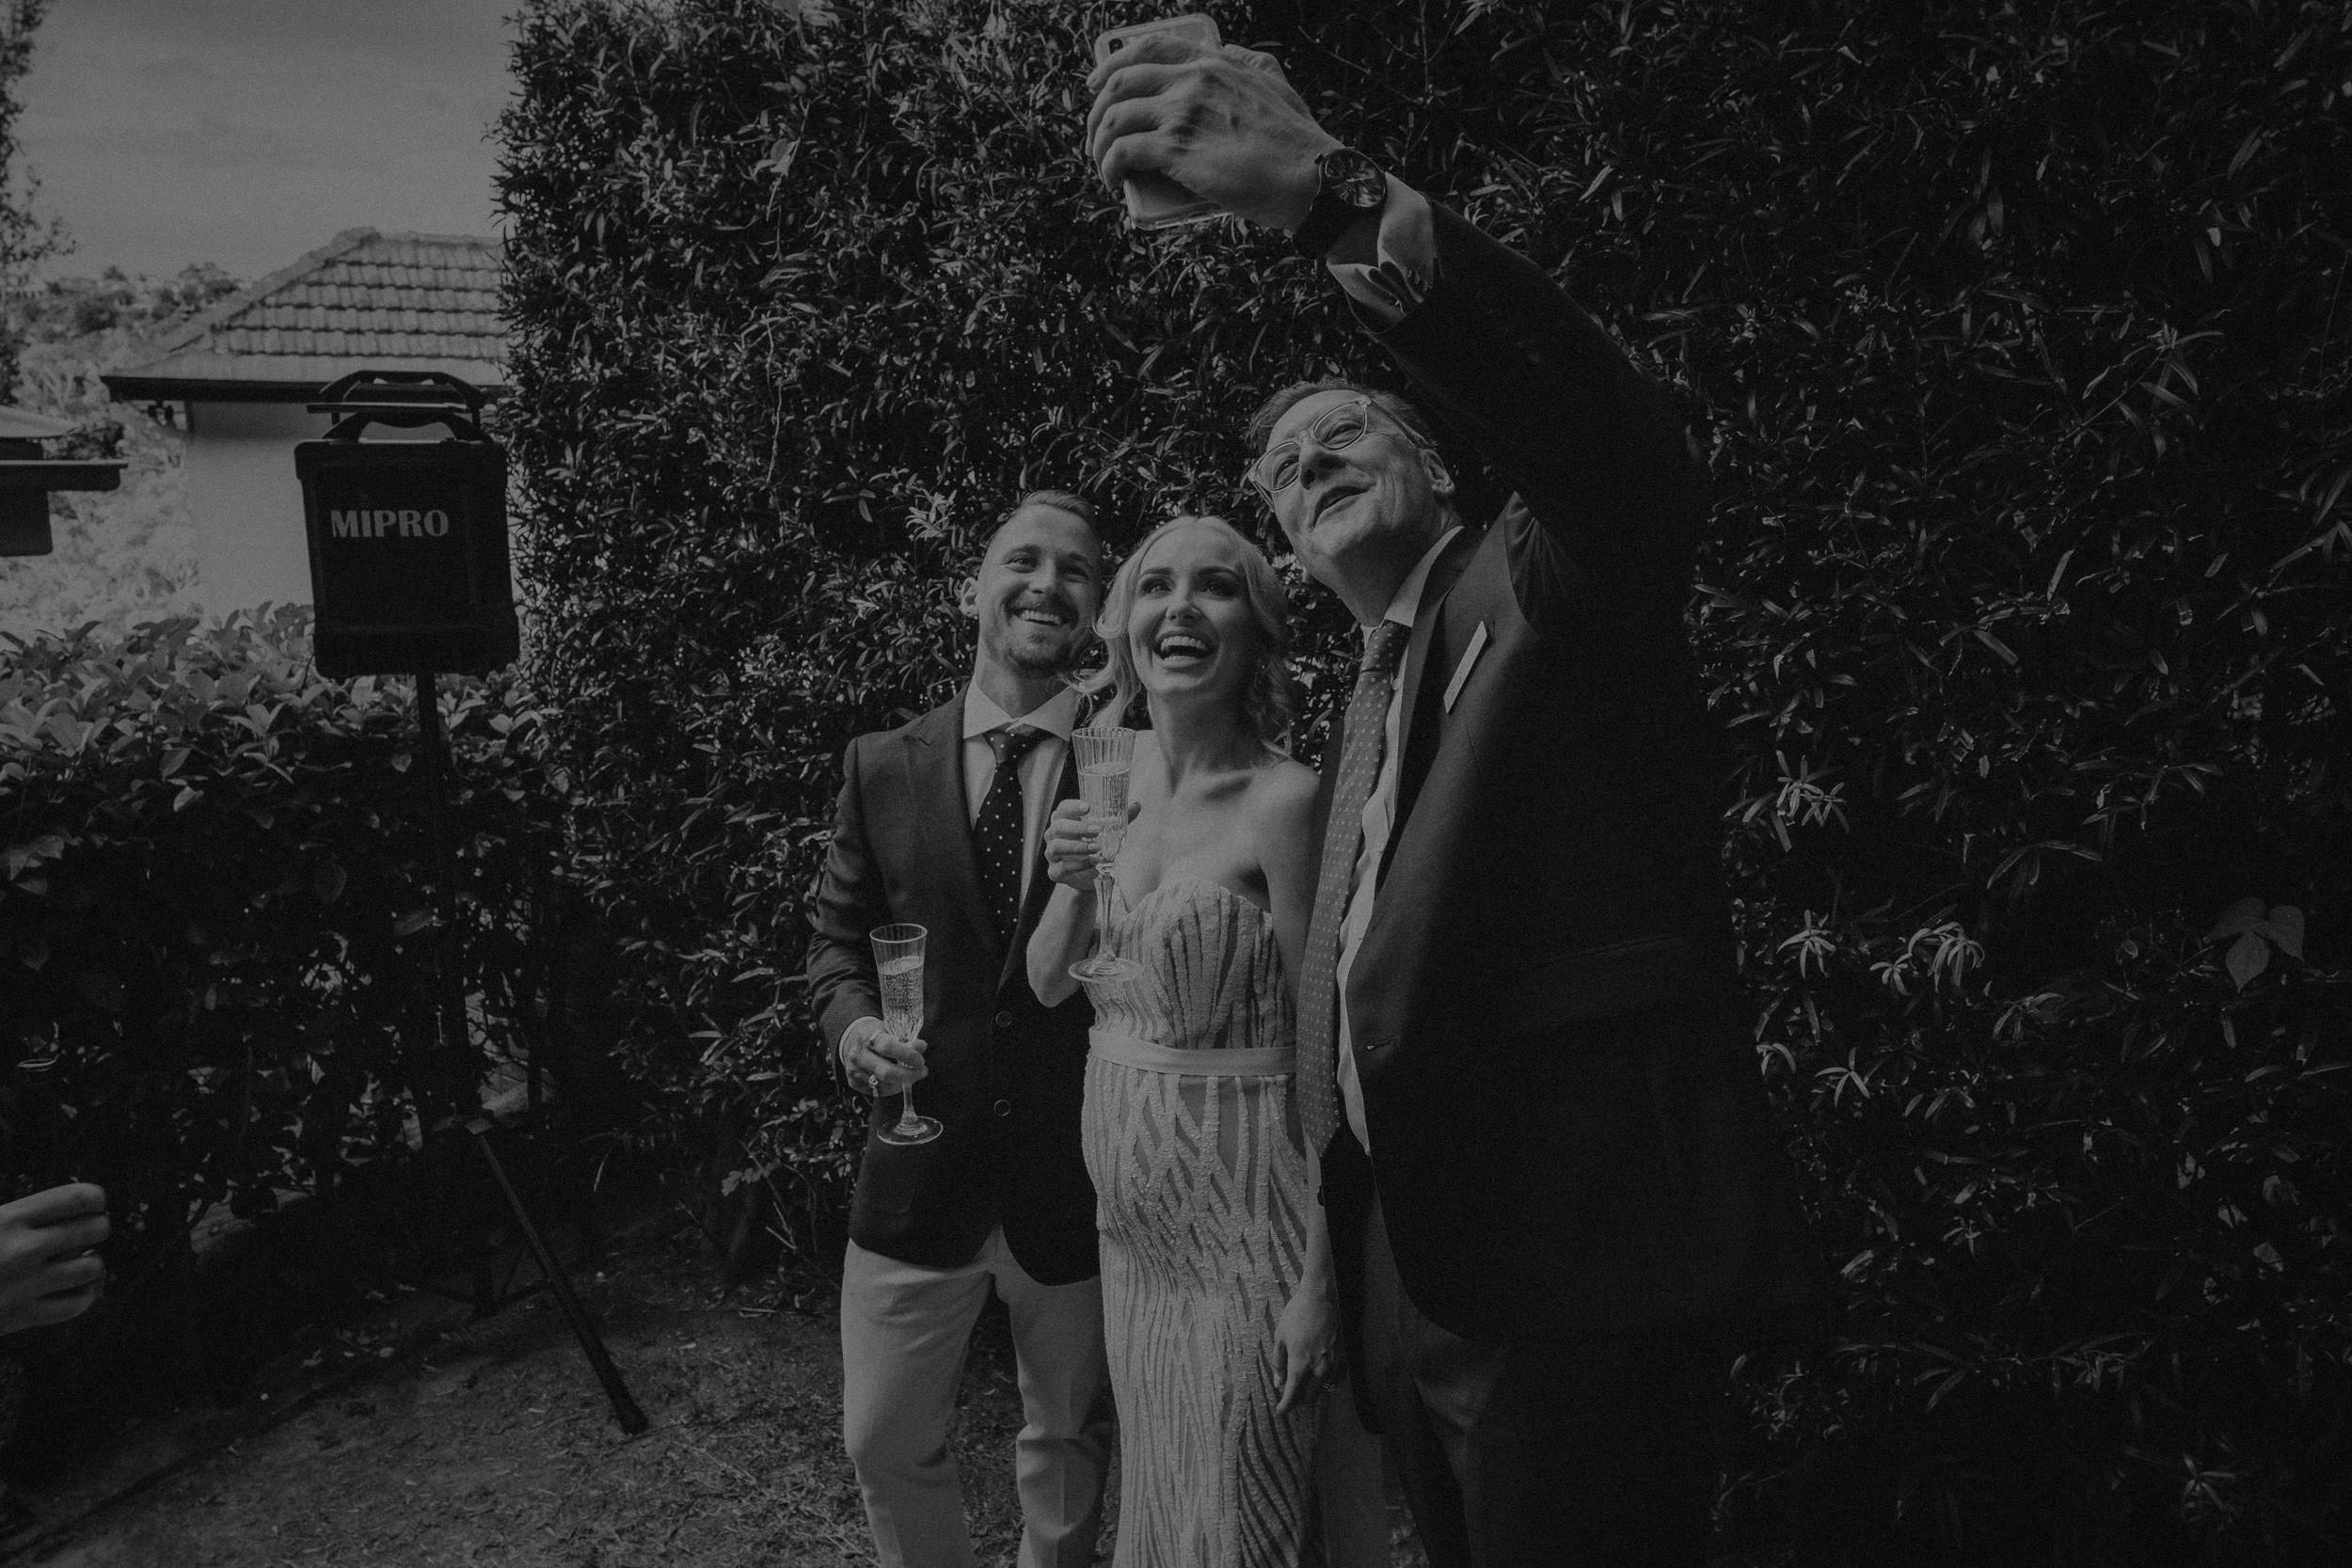 The wedding celebrant takes a selfie with the newly married husband and wife